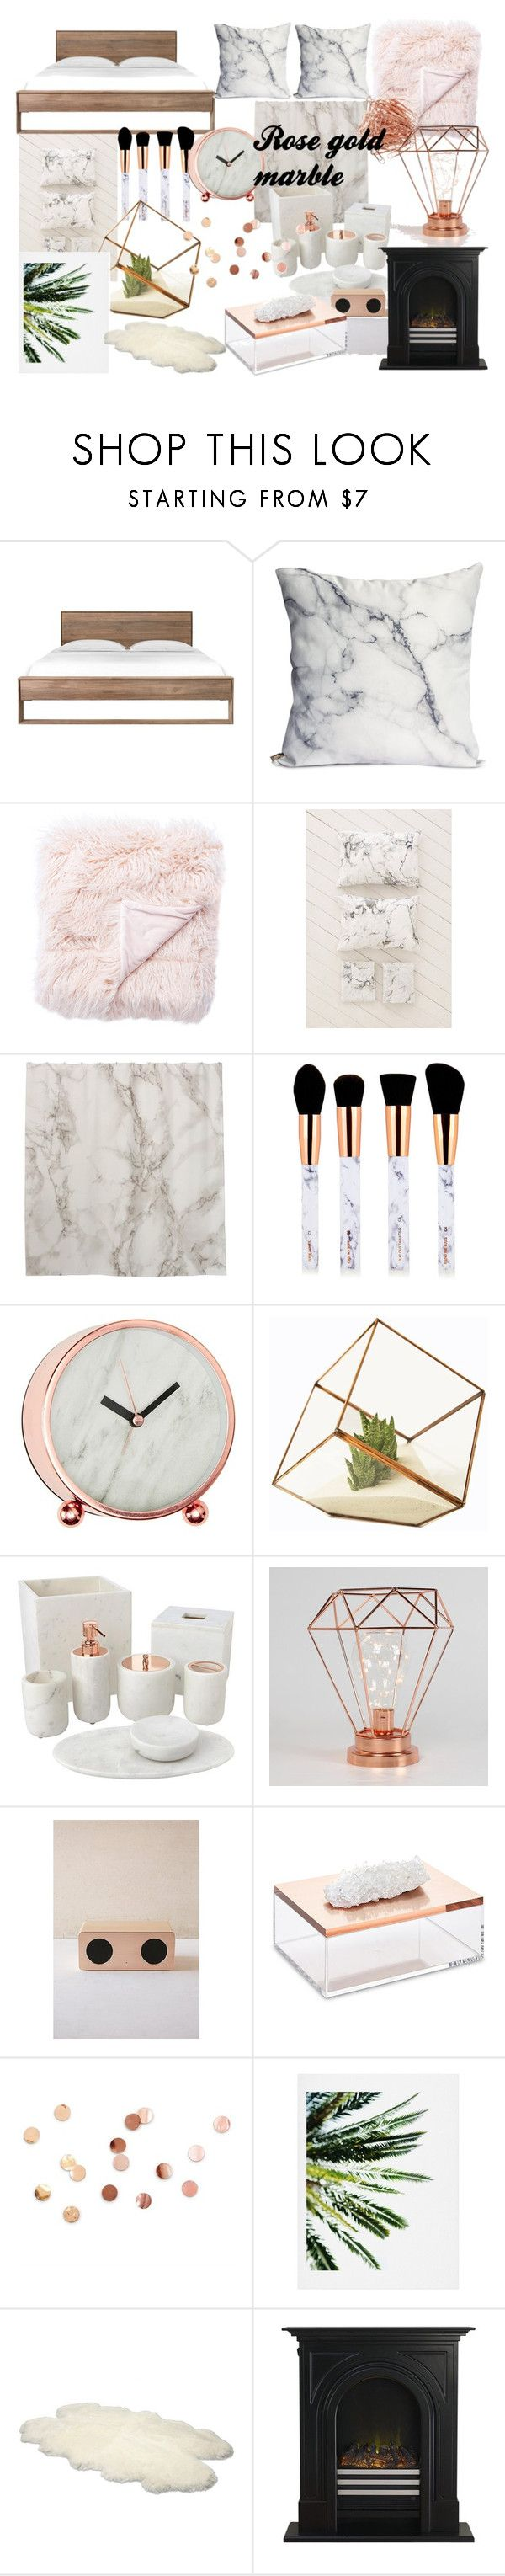 "rose gold marble room decor""alilaforce on polyvore featuring"